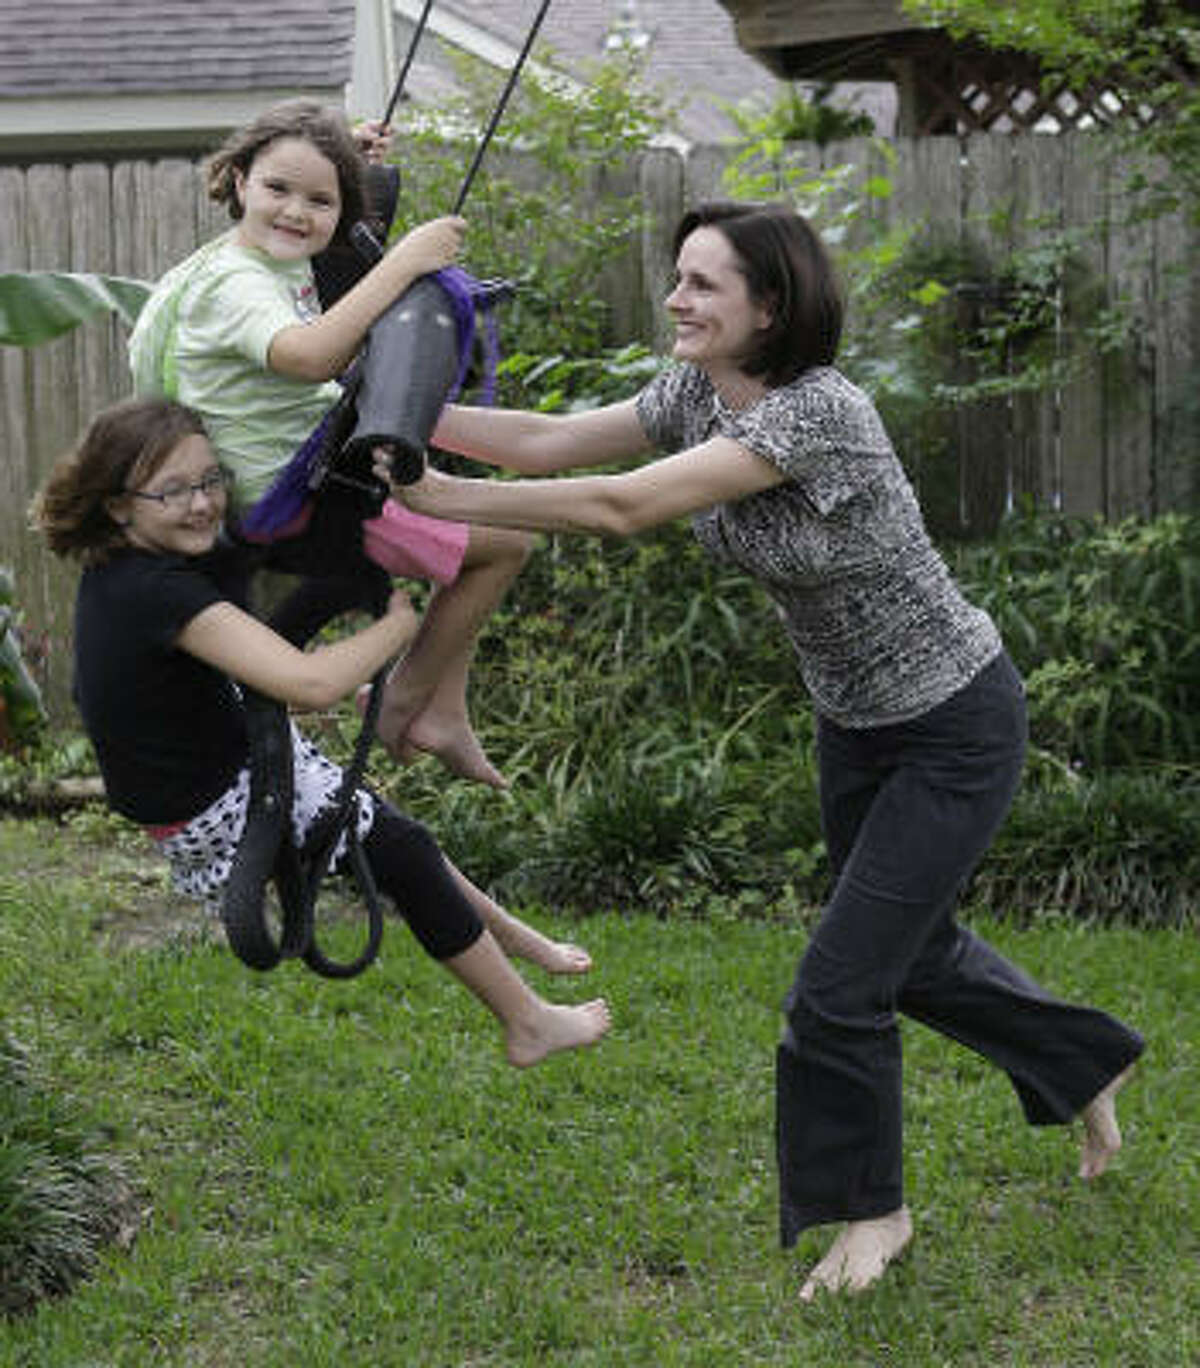 Olivia Ober says finances are part of the reason she plans to take daughters Elizabeth, 7, and Rebekah, 6, out of private school for a hybrid home-schooling program based out of a church.